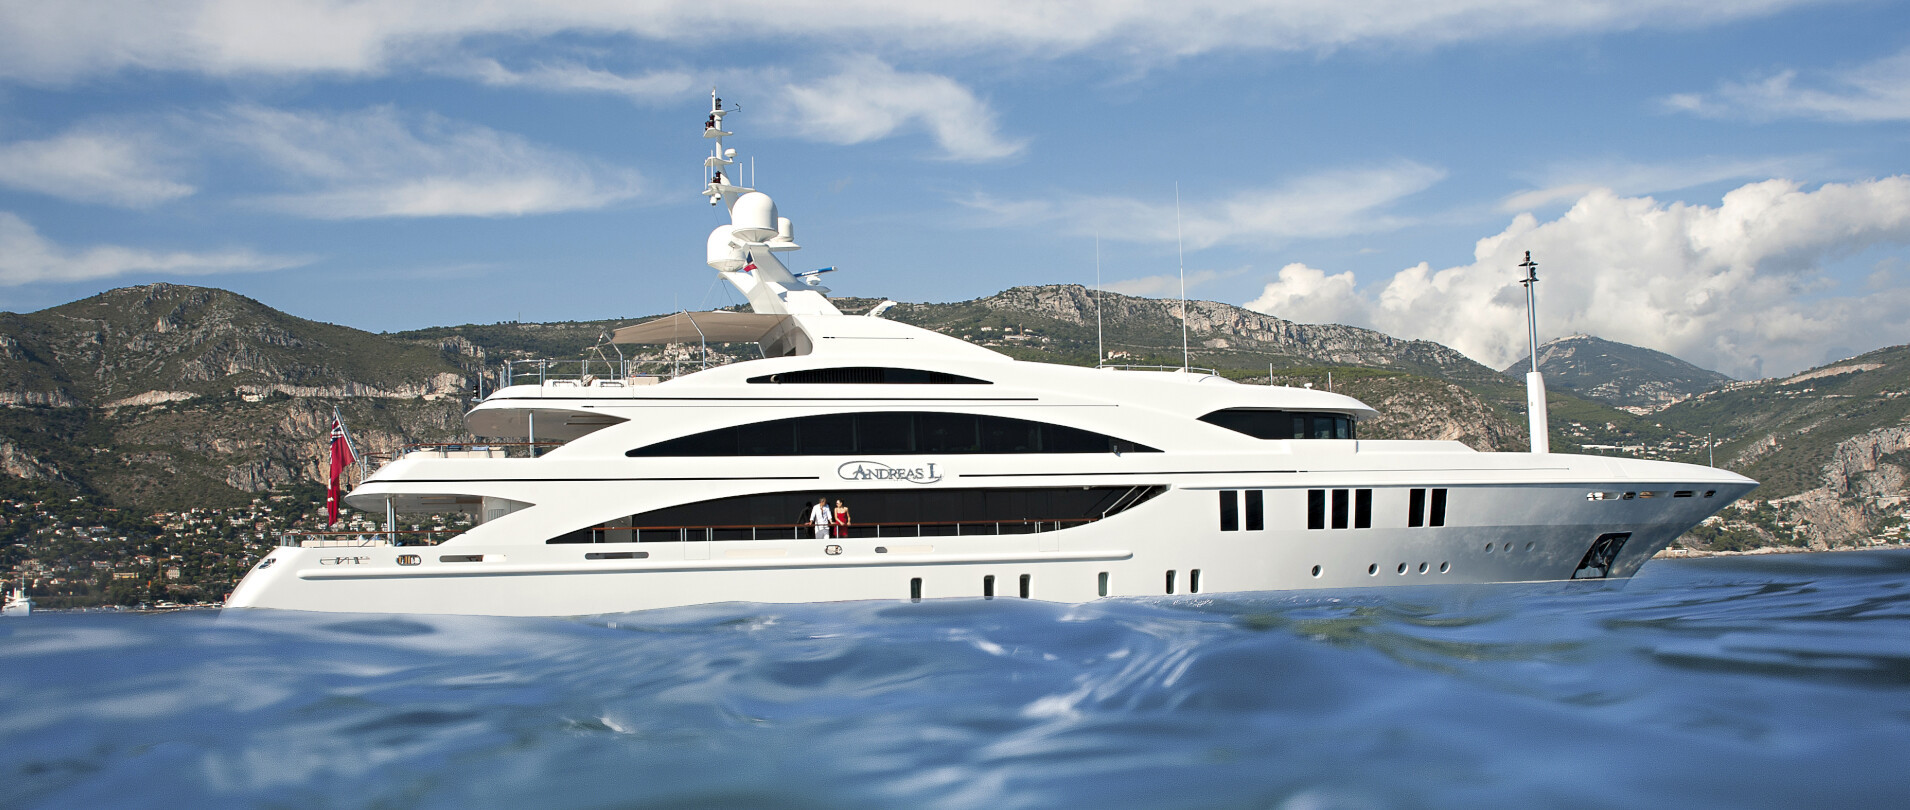 Andreas L, available for viewings during the 2019 Monaco Yacht Show photo 1